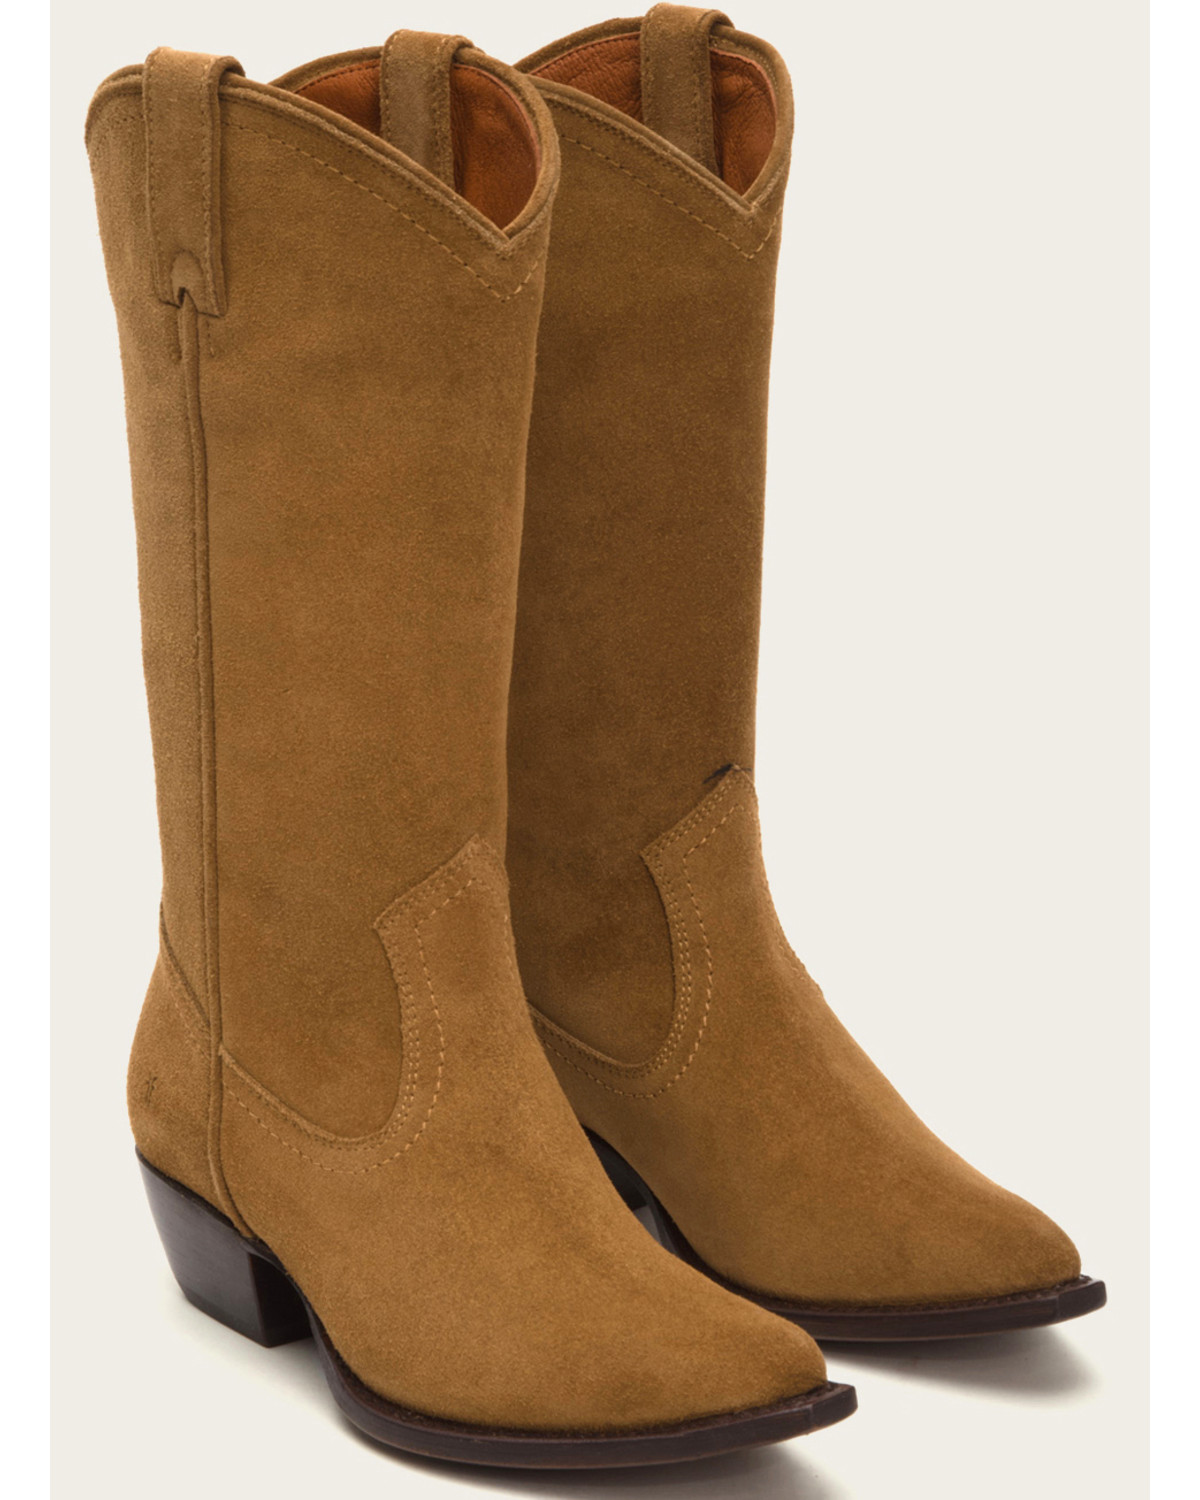 c589abeb295 Frye Women s Sacha Tall Boots - Pointed Toe